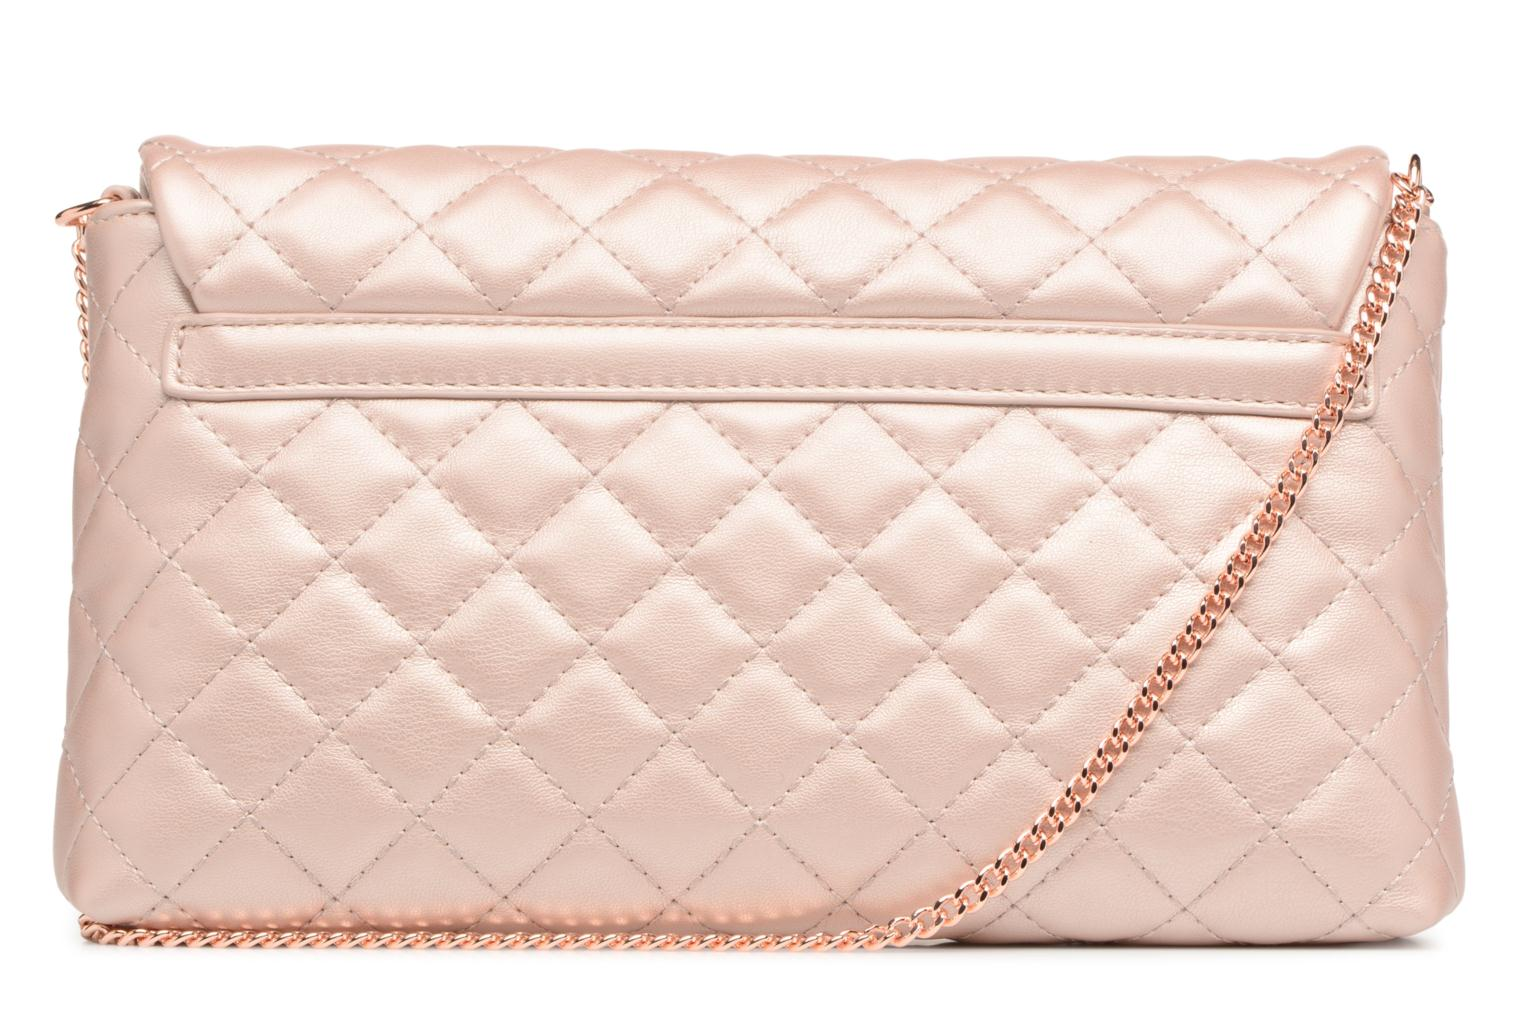 Borse Love Moschino Evening Bag Chaine Quilted Rosa immagine frontale